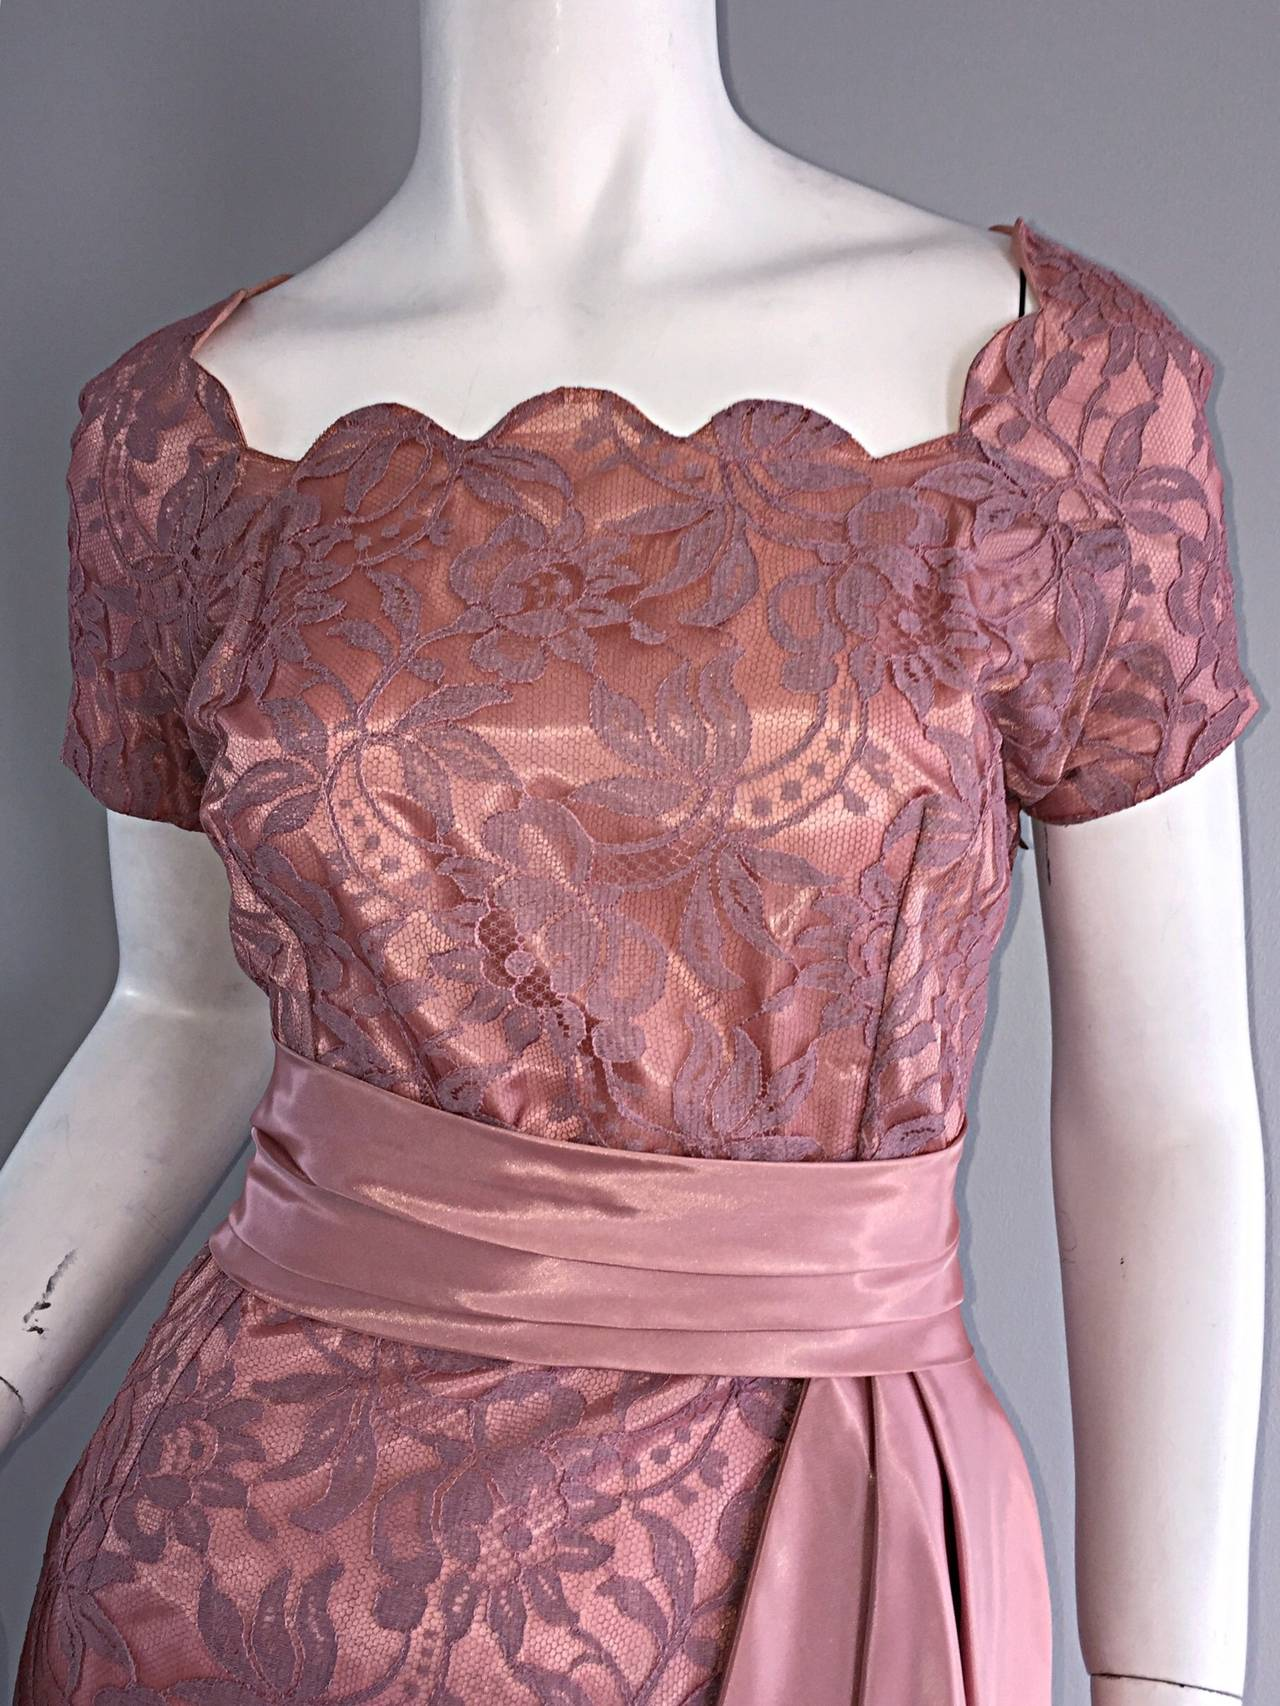 Beautiful Vintage 1950s 50s Pink Lace Wiggle Dress w/ Scalloped Edges 4